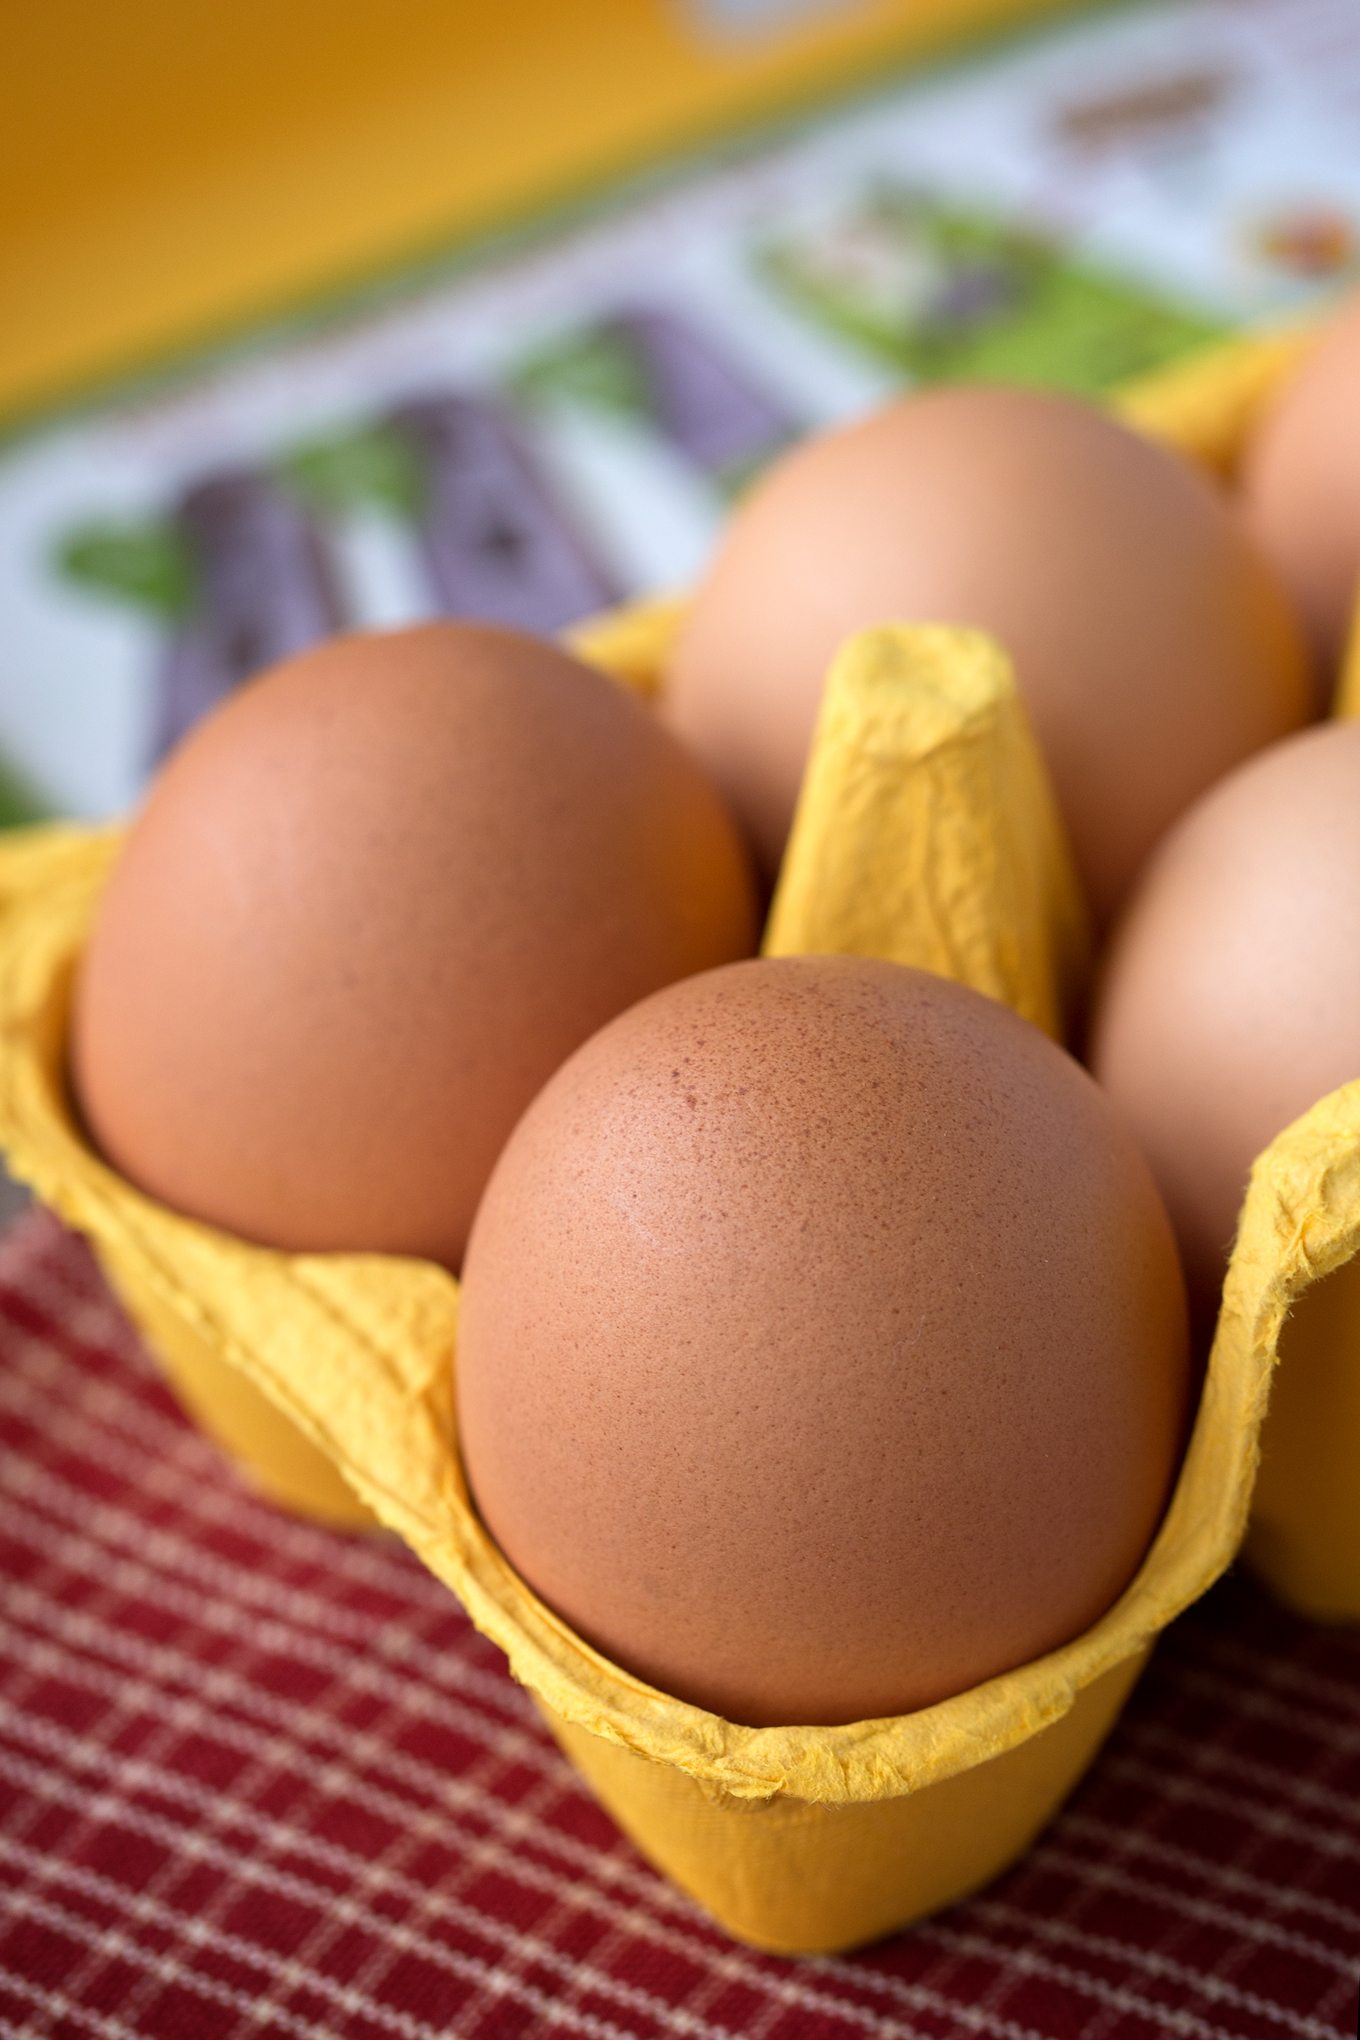 Fresh Brown Eggs with Speckles